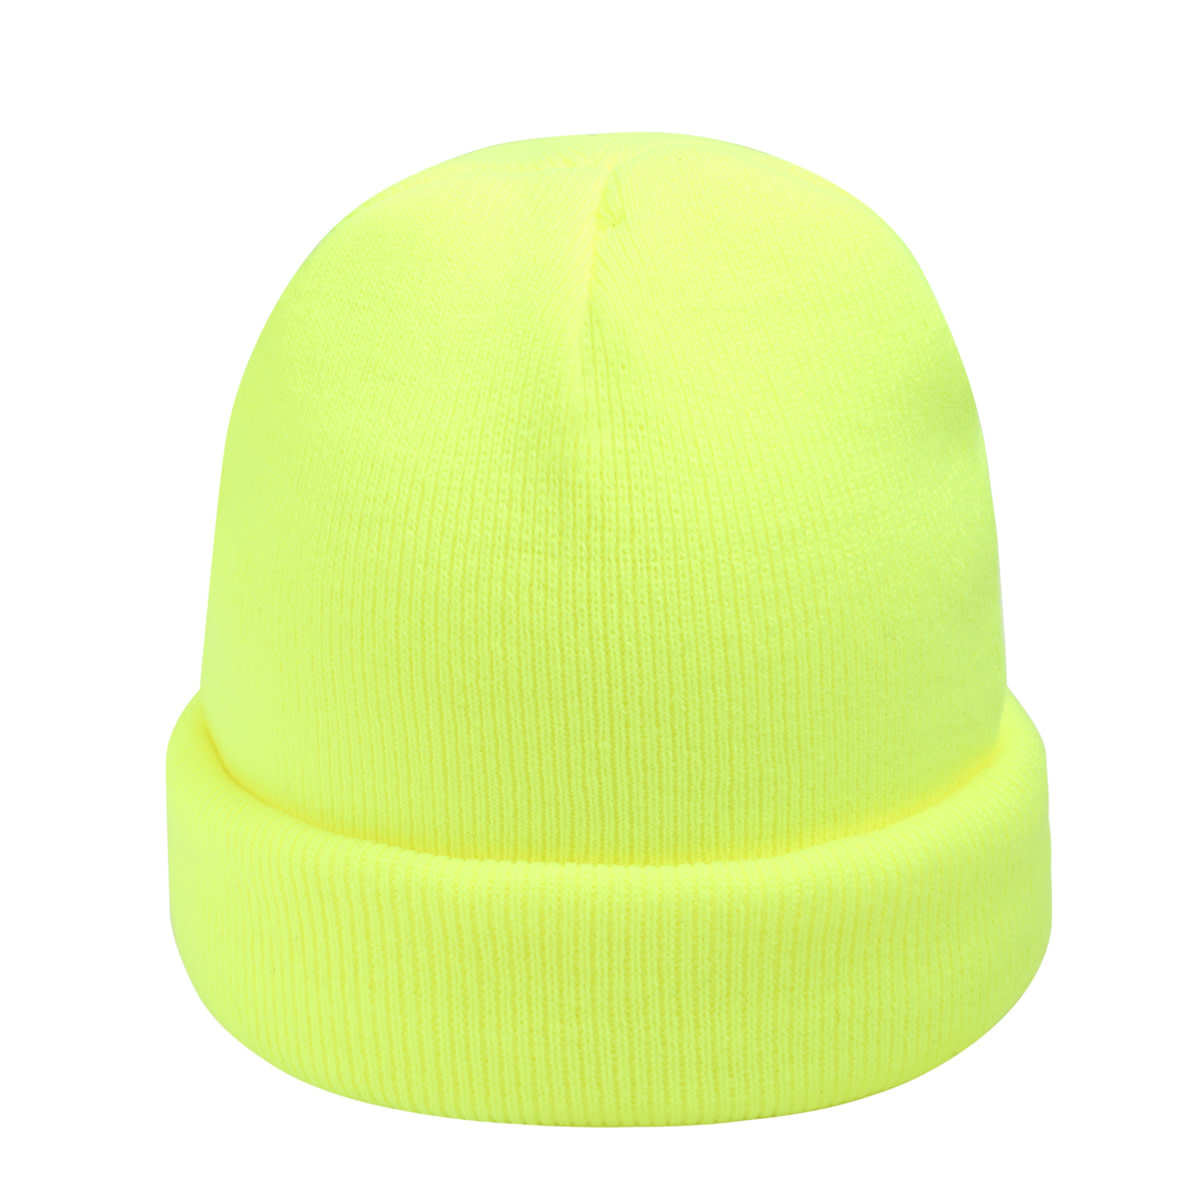 With love Beanie rainbow colors - neon yellow